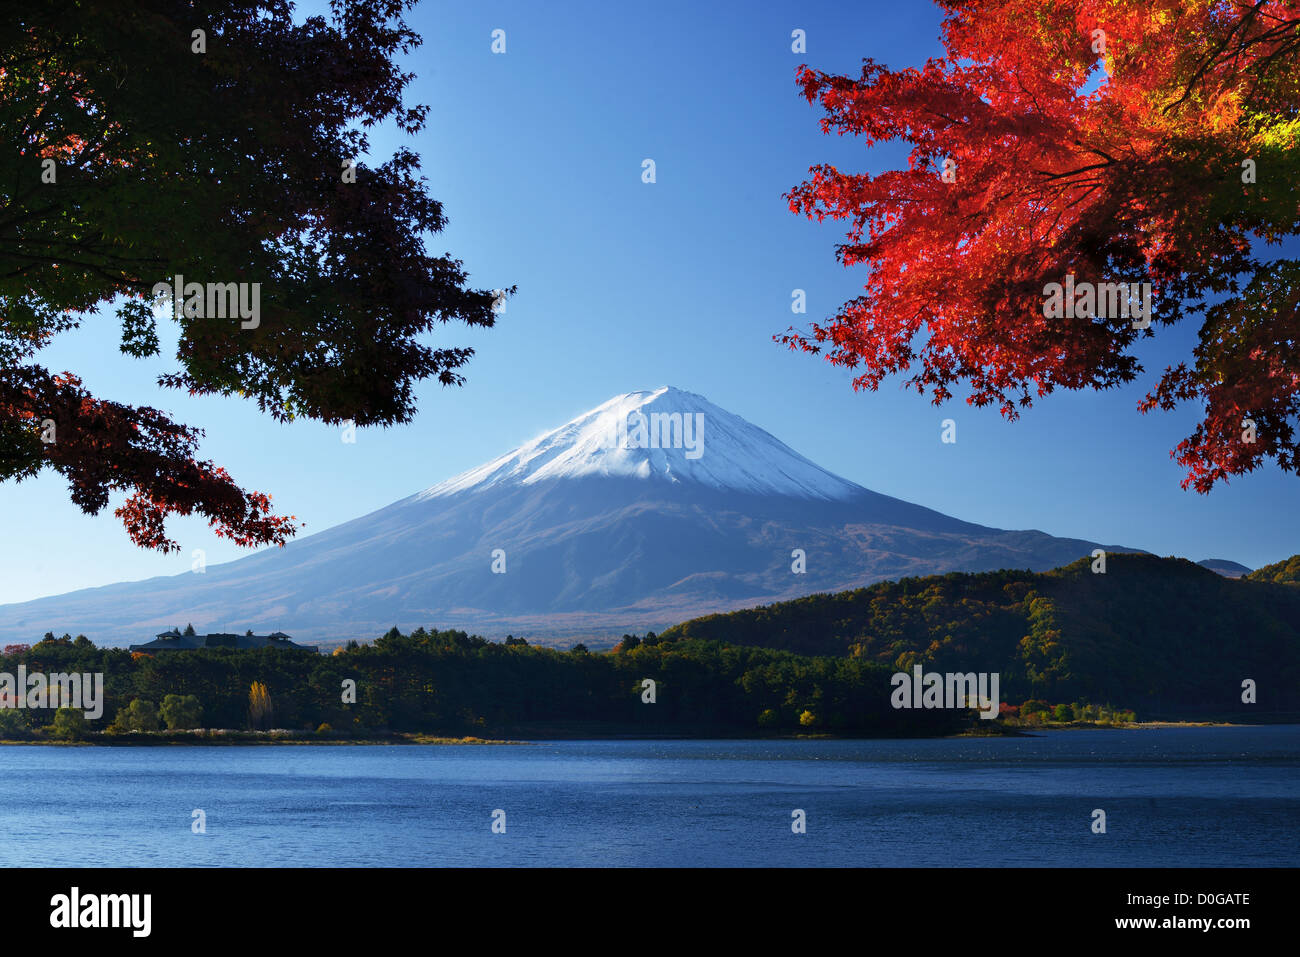 Mount Fuji at dusk near Lake Kawaguchi in Yamanashi Prefecture, Japan. - Stock Image